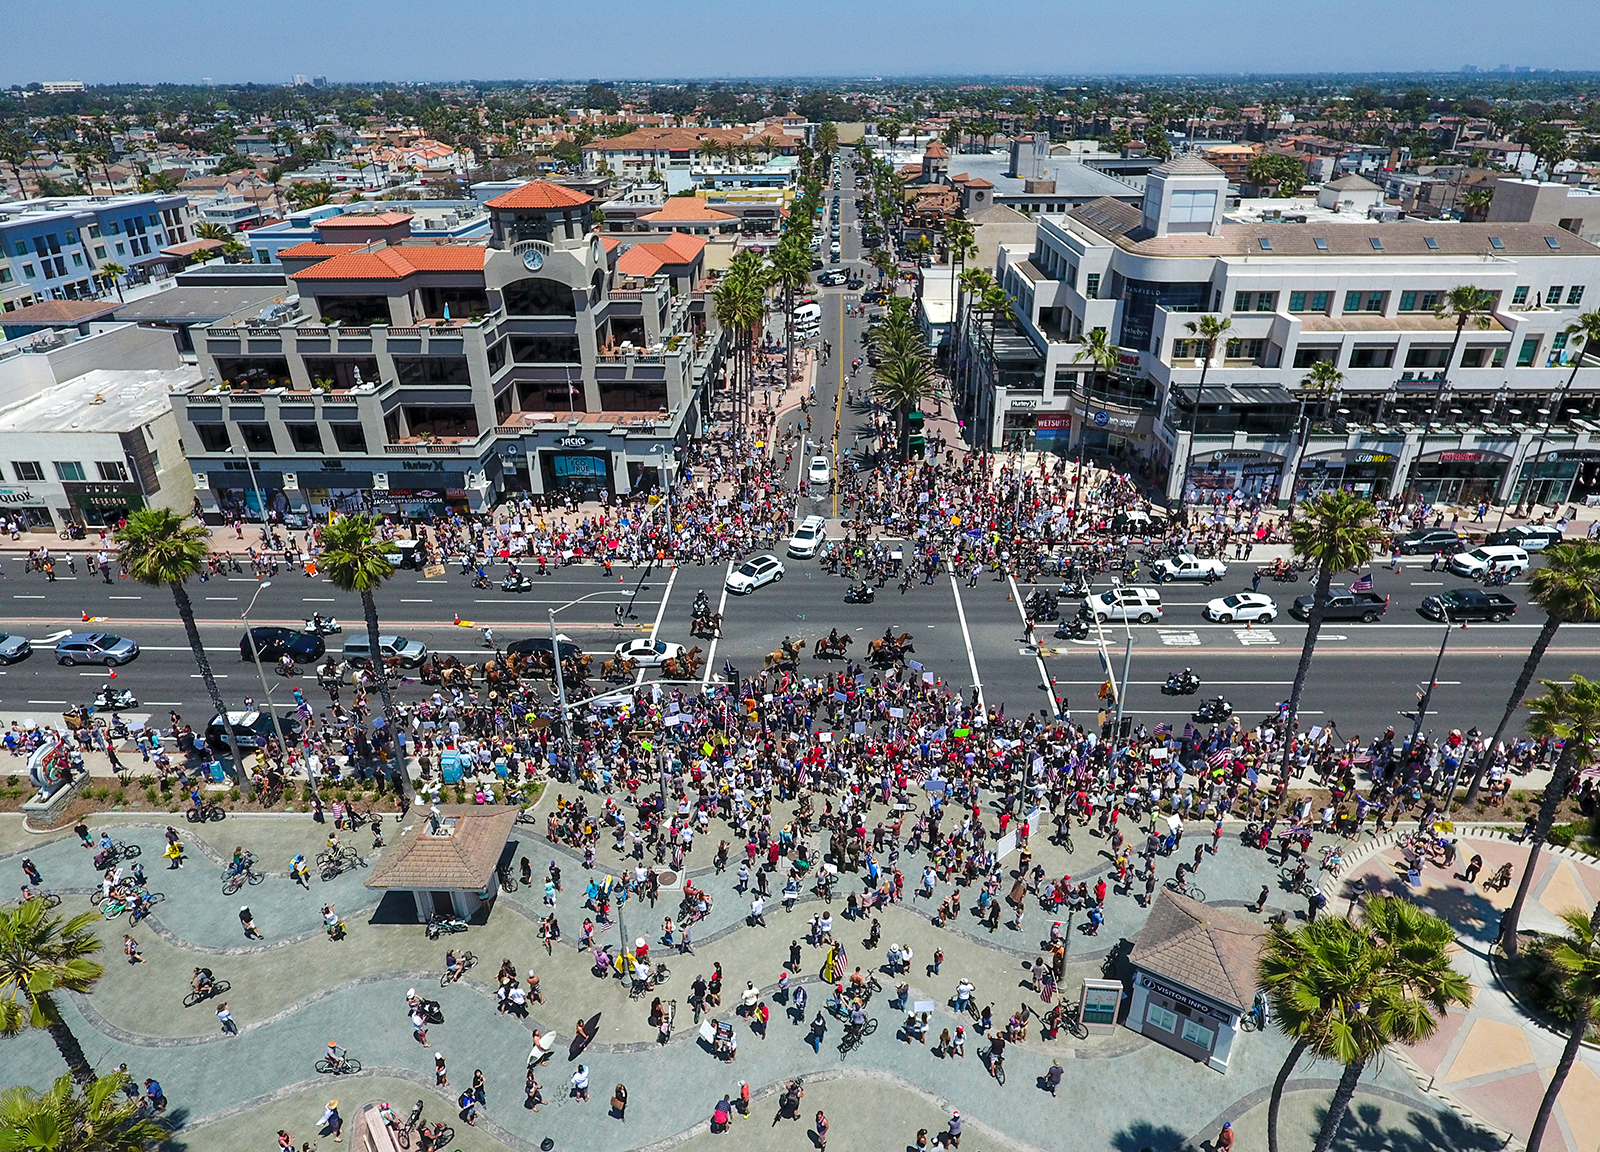 Thousands of people gather at the corner of Main Street and Pacific Coast Highway to protest coronavirus (COVID-19) closures in Huntington Beach, California on May 1.